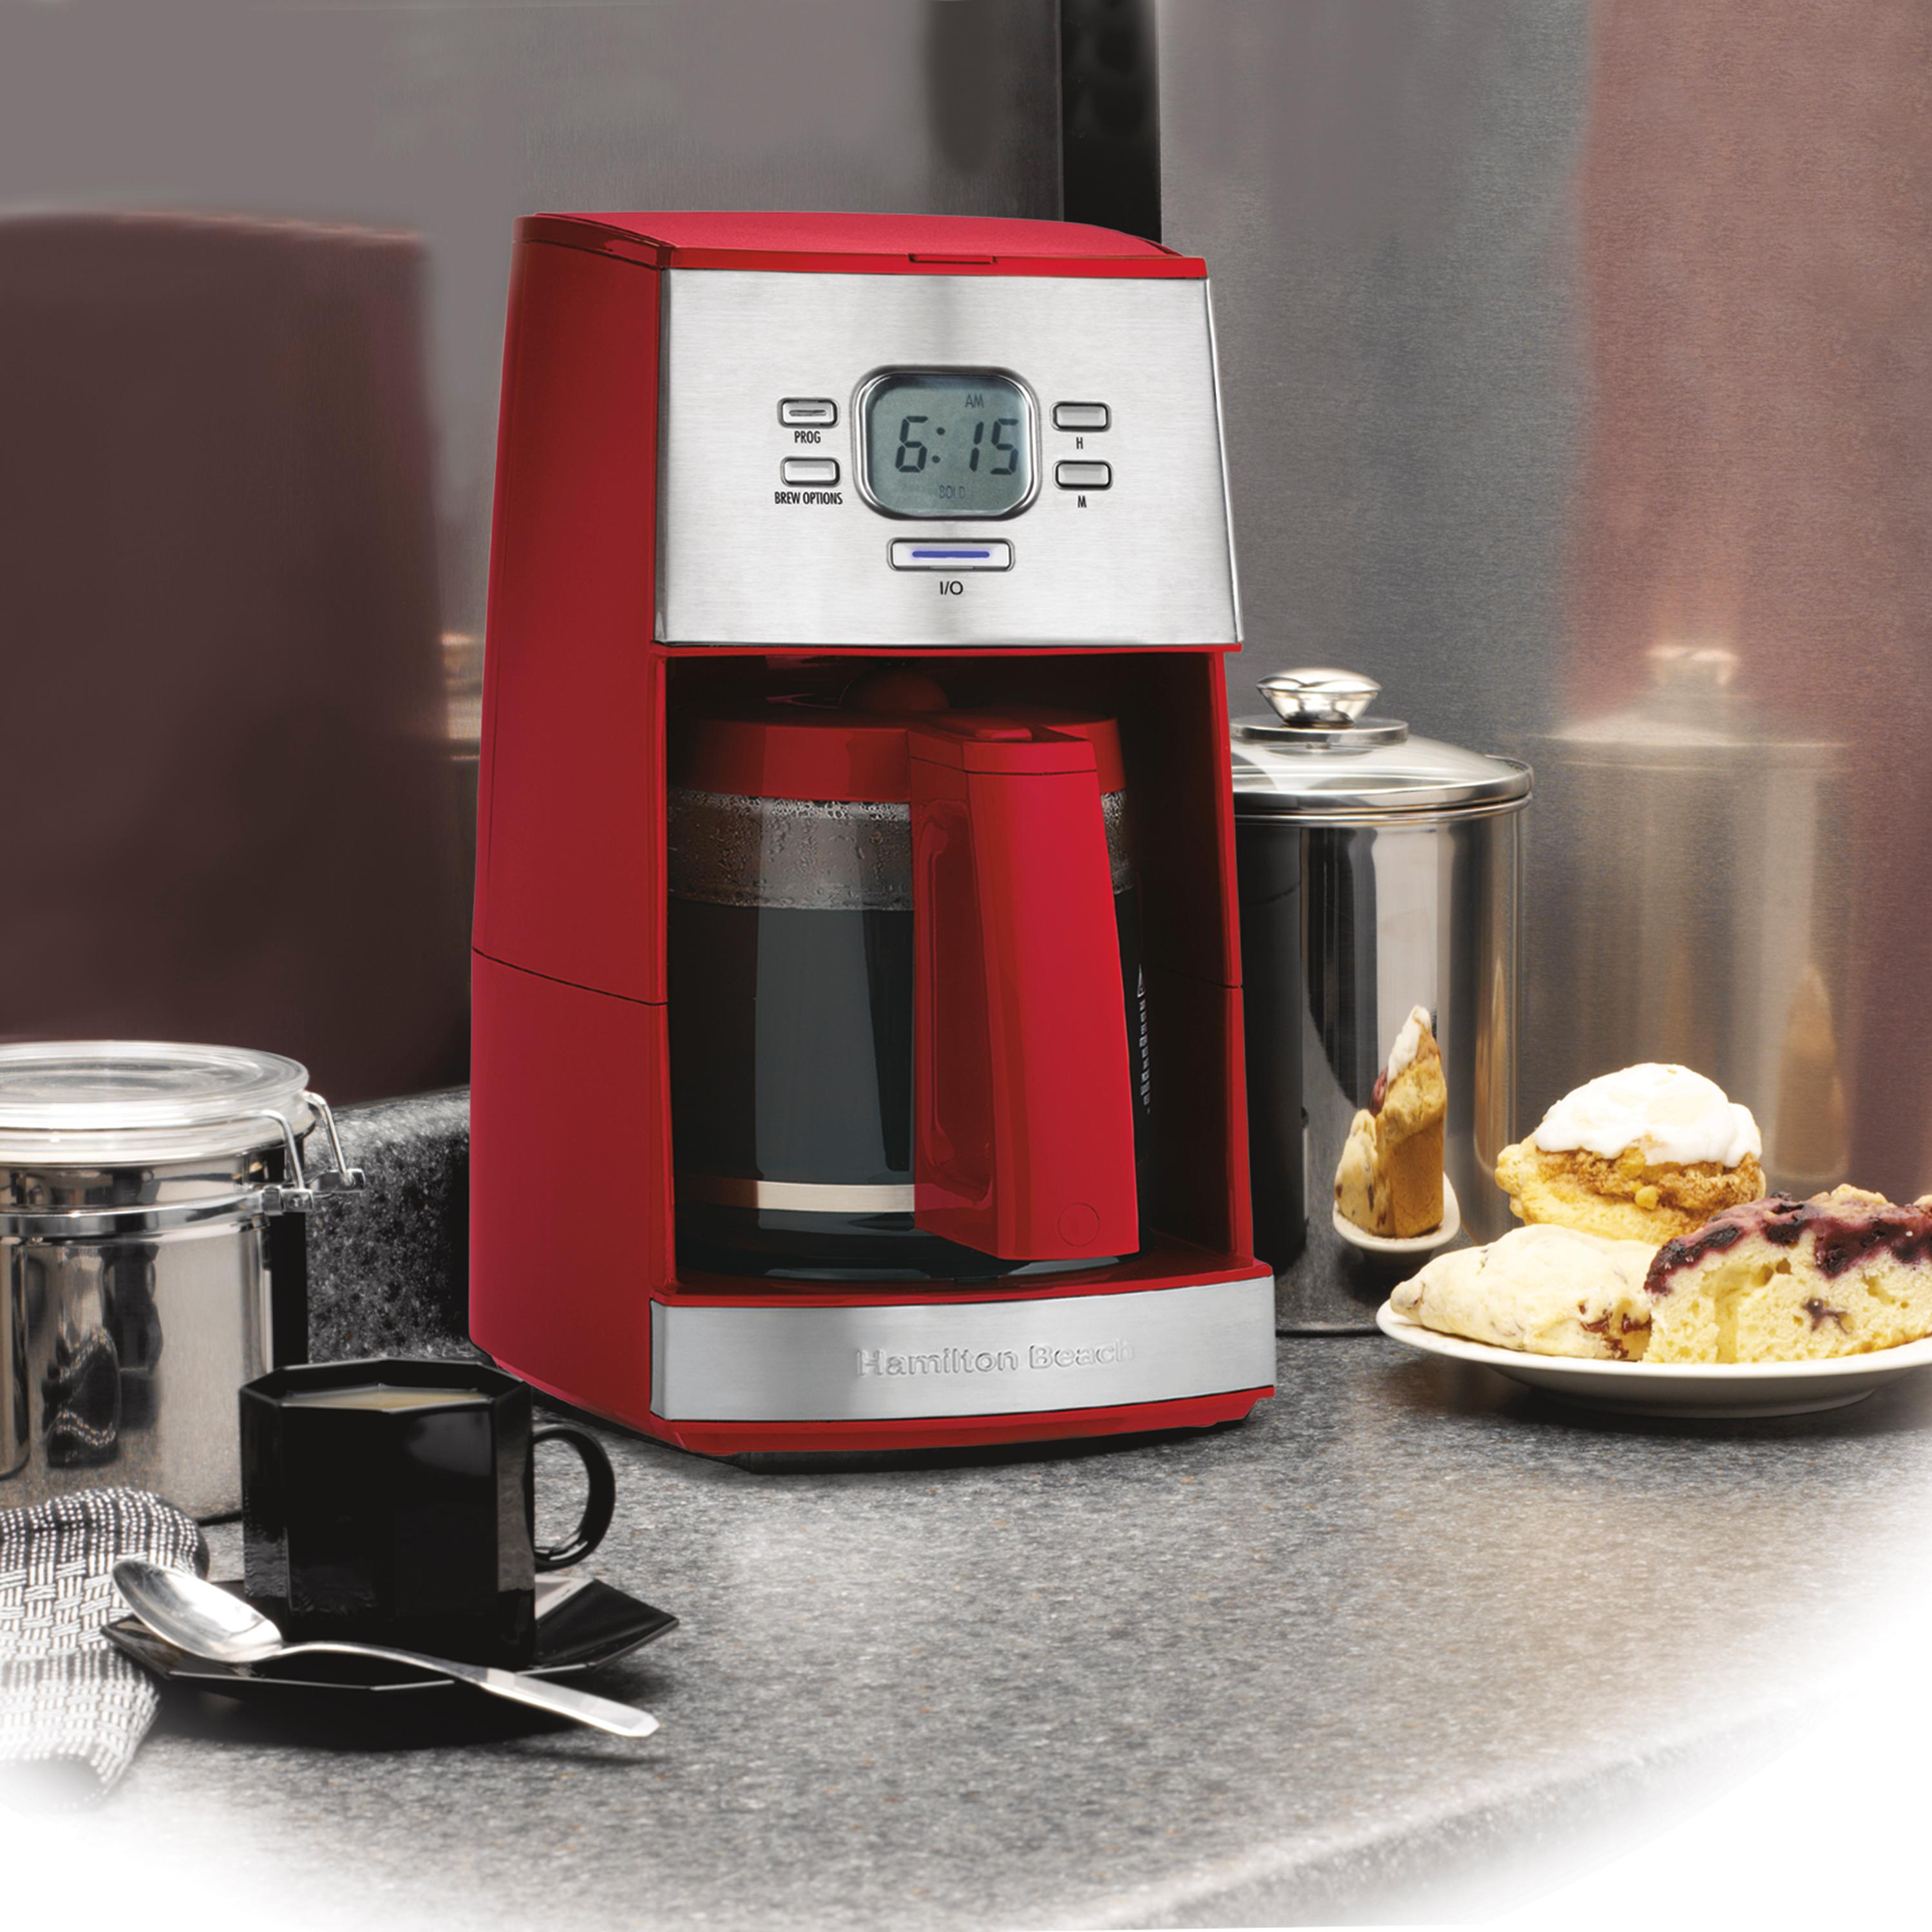 Mr Coffee No Carafe Coffee Maker Reviews : Amazon.com: Hamilton Beach Ensemble 12-Cup Coffeemaker with Glass Carafe, Red: Drip Coffeemakers ...